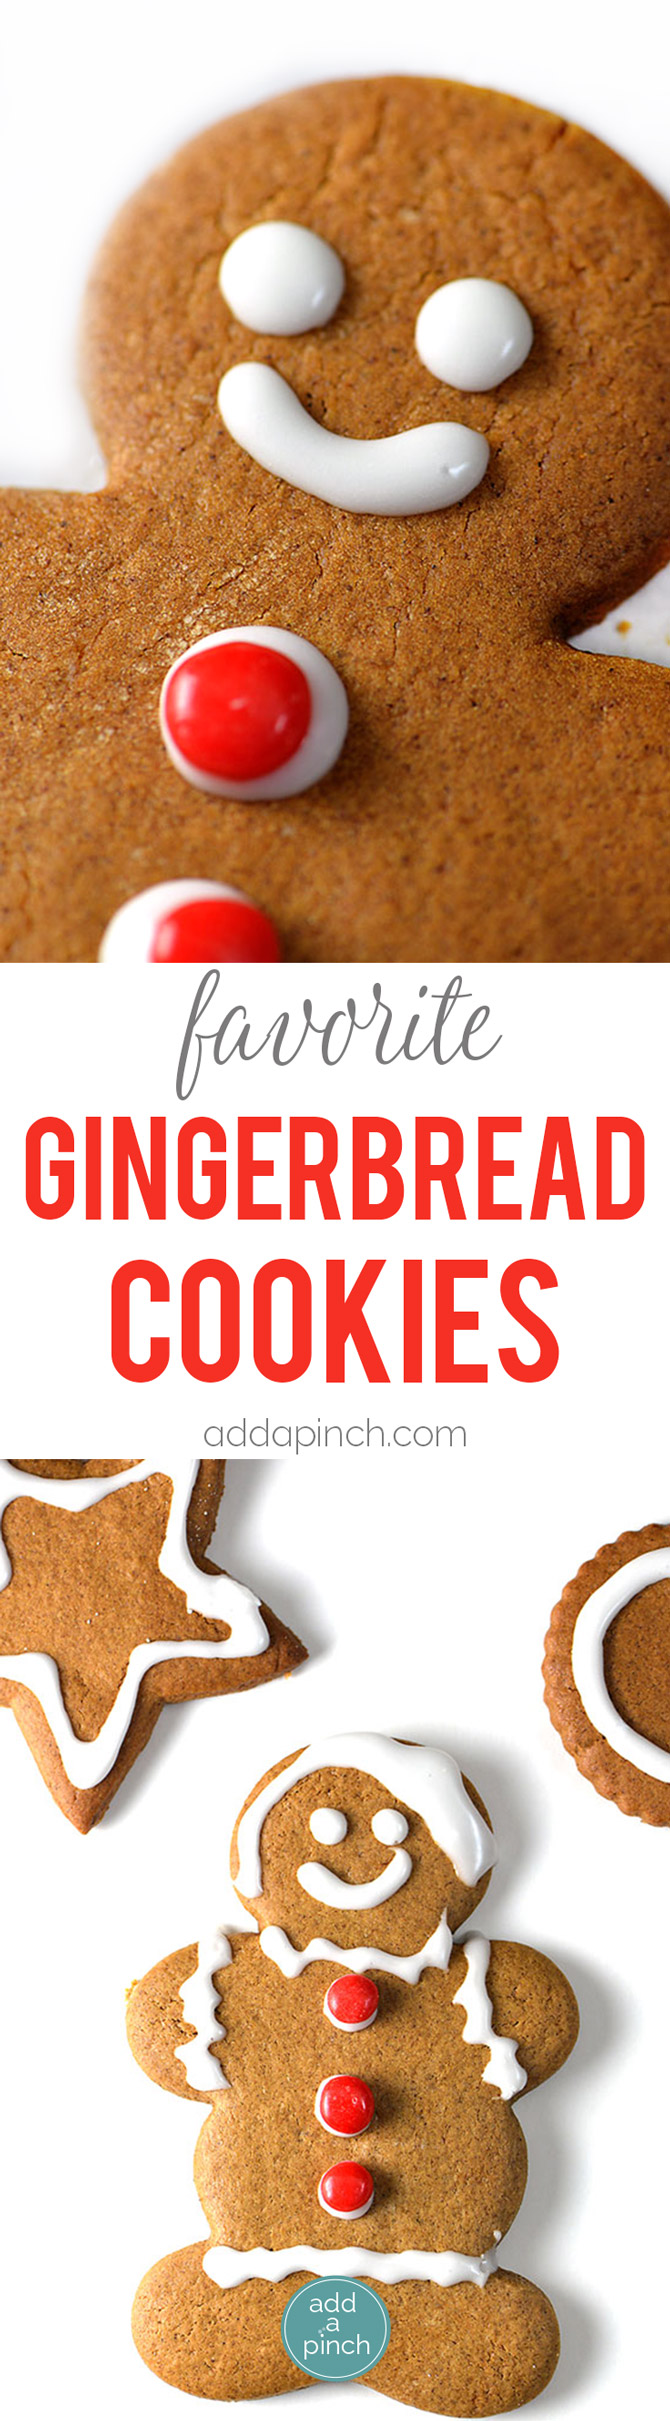 Gingerbread Cookies - Gingerbread cookies are a favorite Christmas cookie recipe and this gingerbread will become a favorite with a few special additions. // addapinch.com